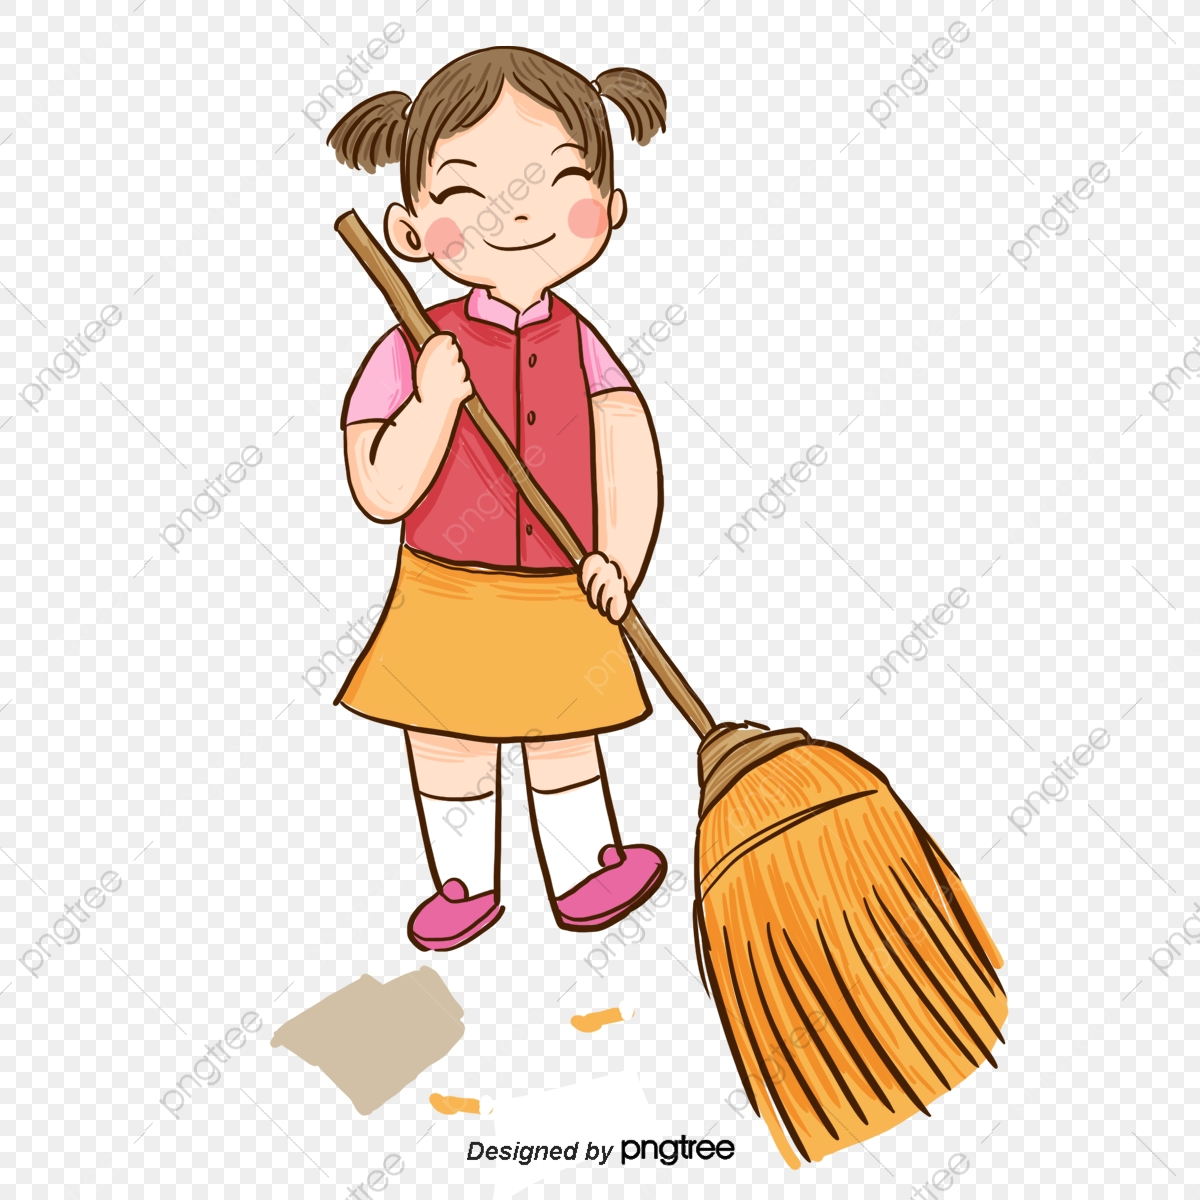 girls volunteer sweep the floor protect the environment garbage girl png transparent clipart image and psd file for free download https pngtree com freepng girls volunteer sweep the floor 4288438 html